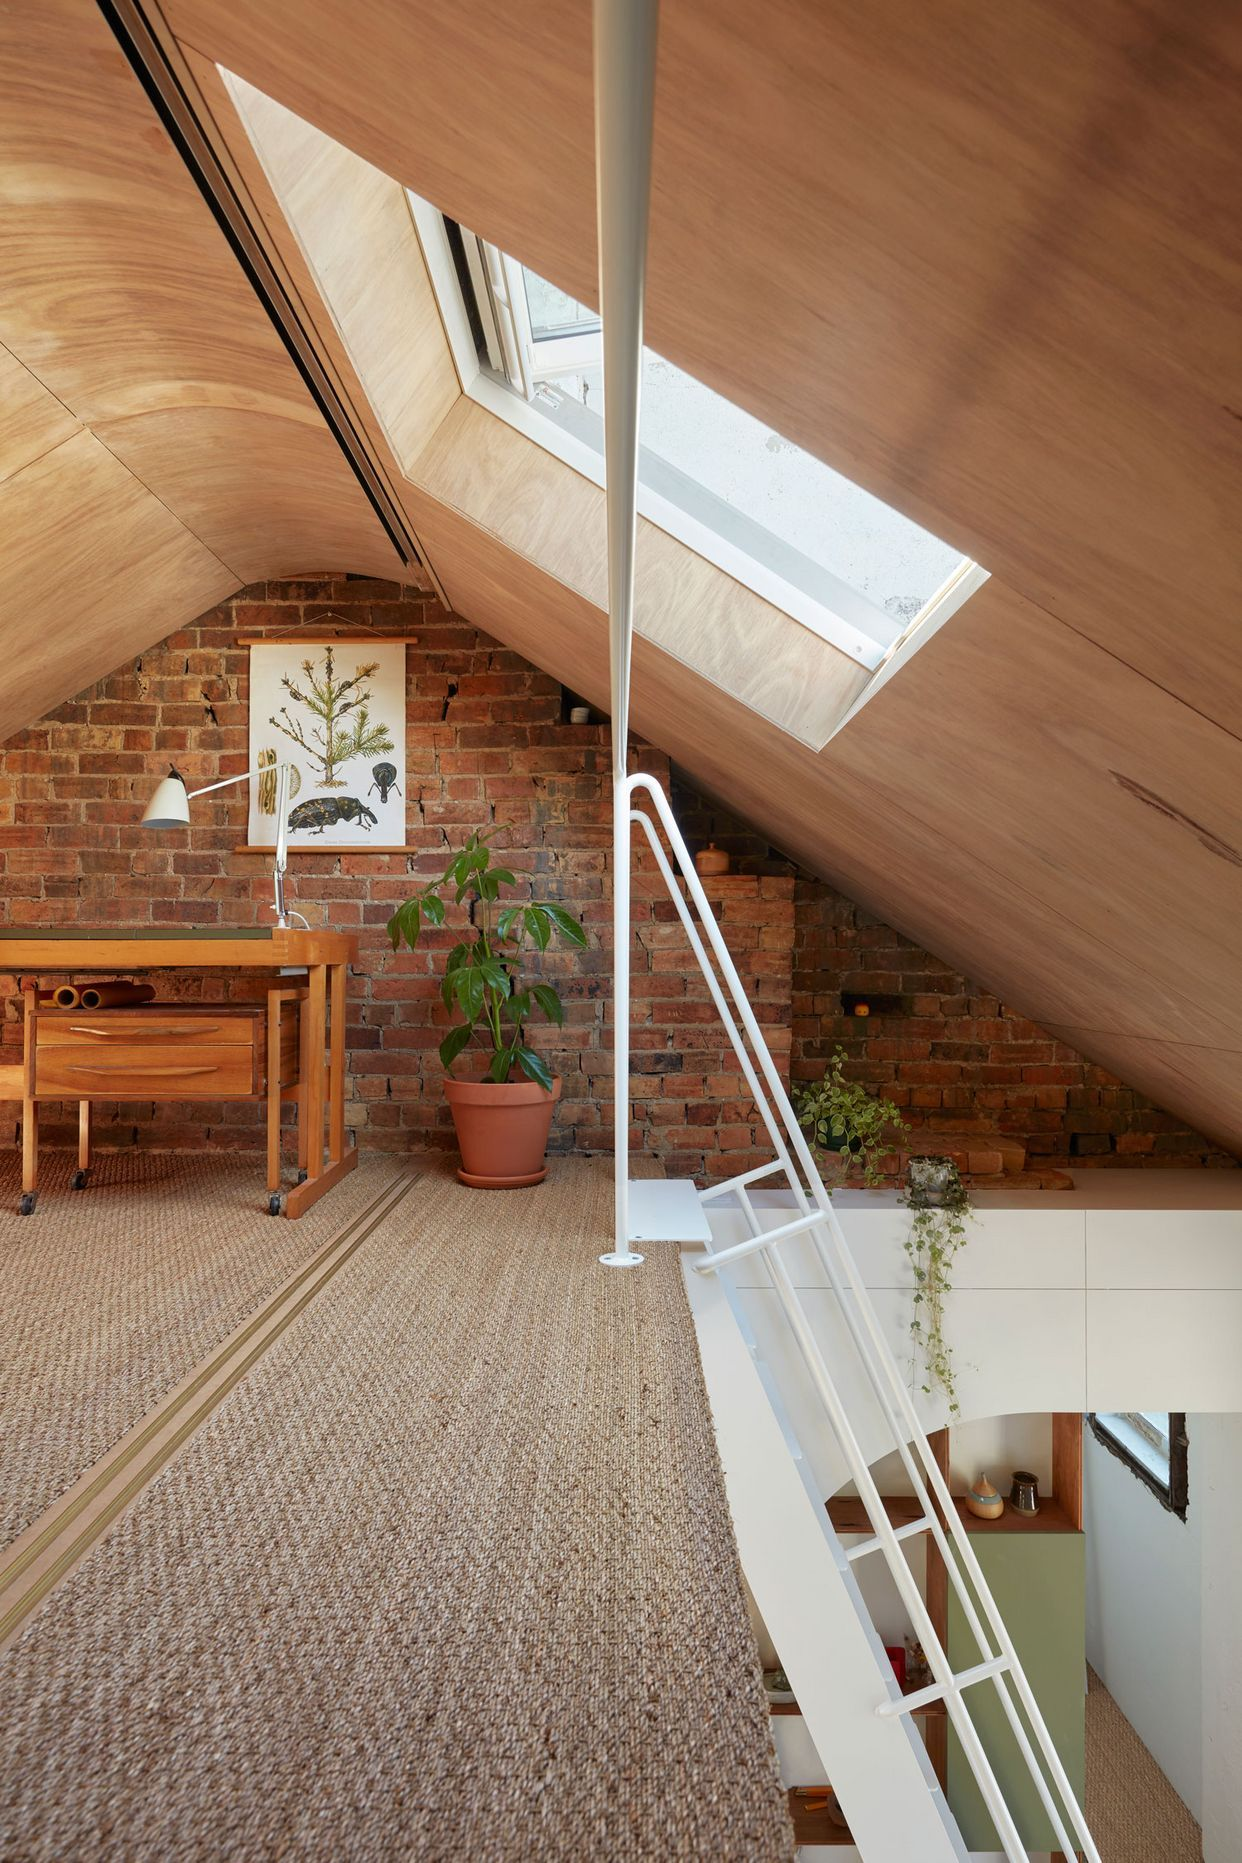 Hoa S House Conversion Of A 150 Year Old Melbourne Pub By Ioa Studio Yellowtrace Vintage House Melbourne House Bright Homes